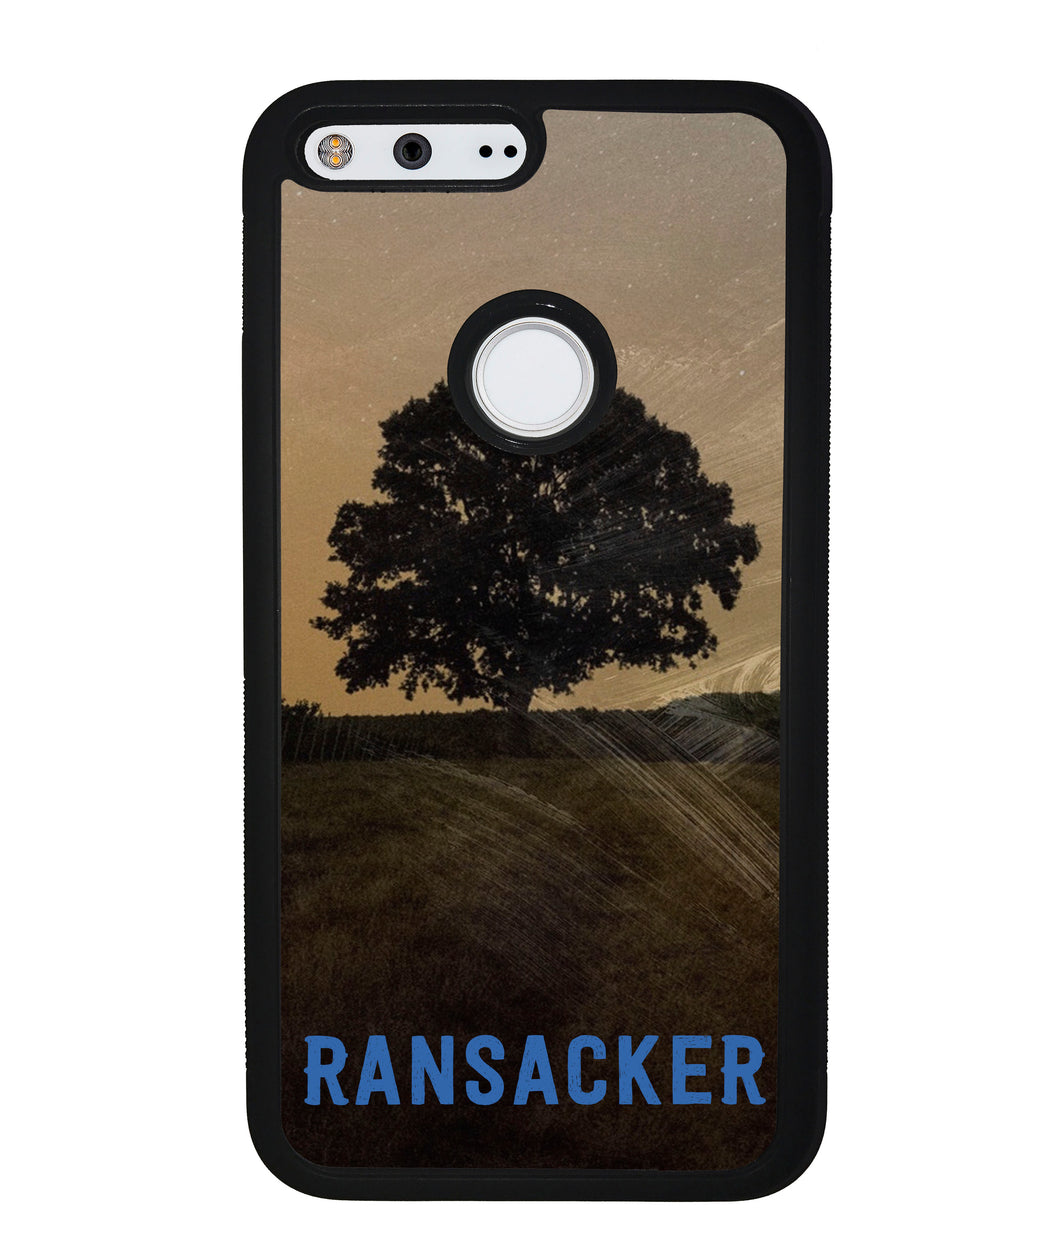 Emmy Laybourne Ransacker | Google Phone Case